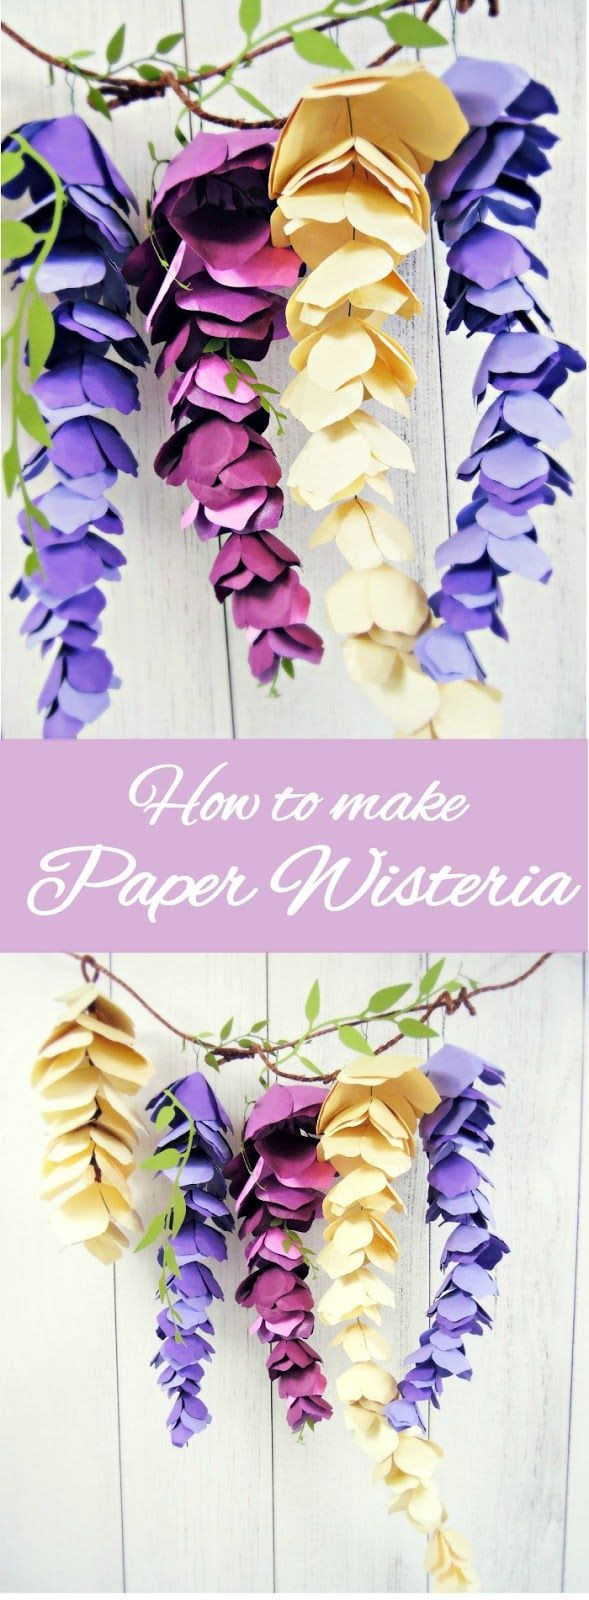 Hanging Paper Wisteria Tutorial Amp Templates Contemporary